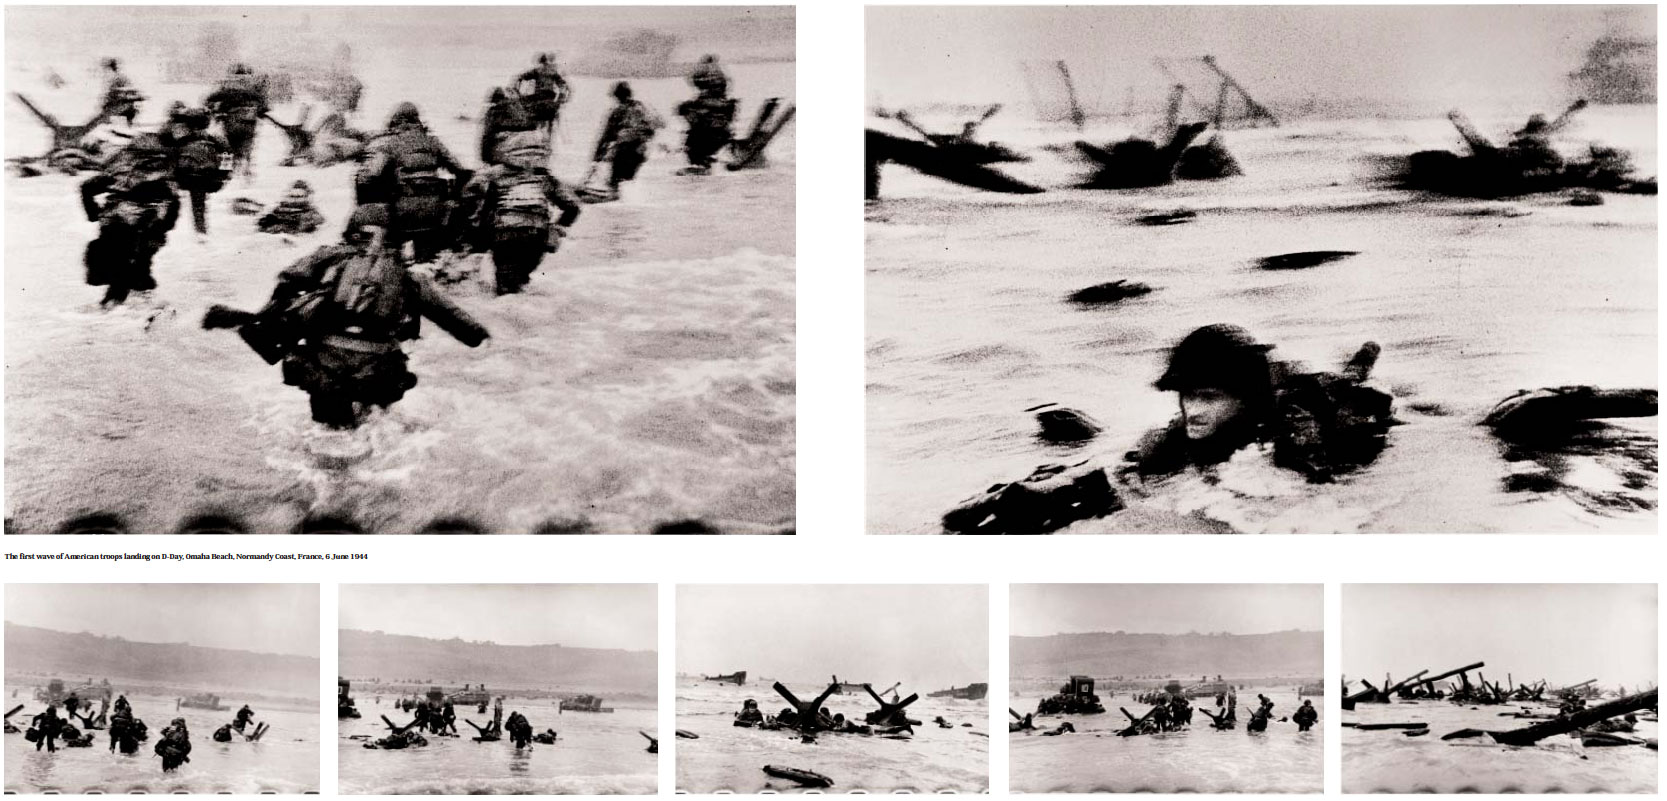 The first wave of American troops landing on D-Day,Omaha Beach, Normandy Coast, France, 6 June 1944, by Robert Capa. As presented in our book Magnum Stories